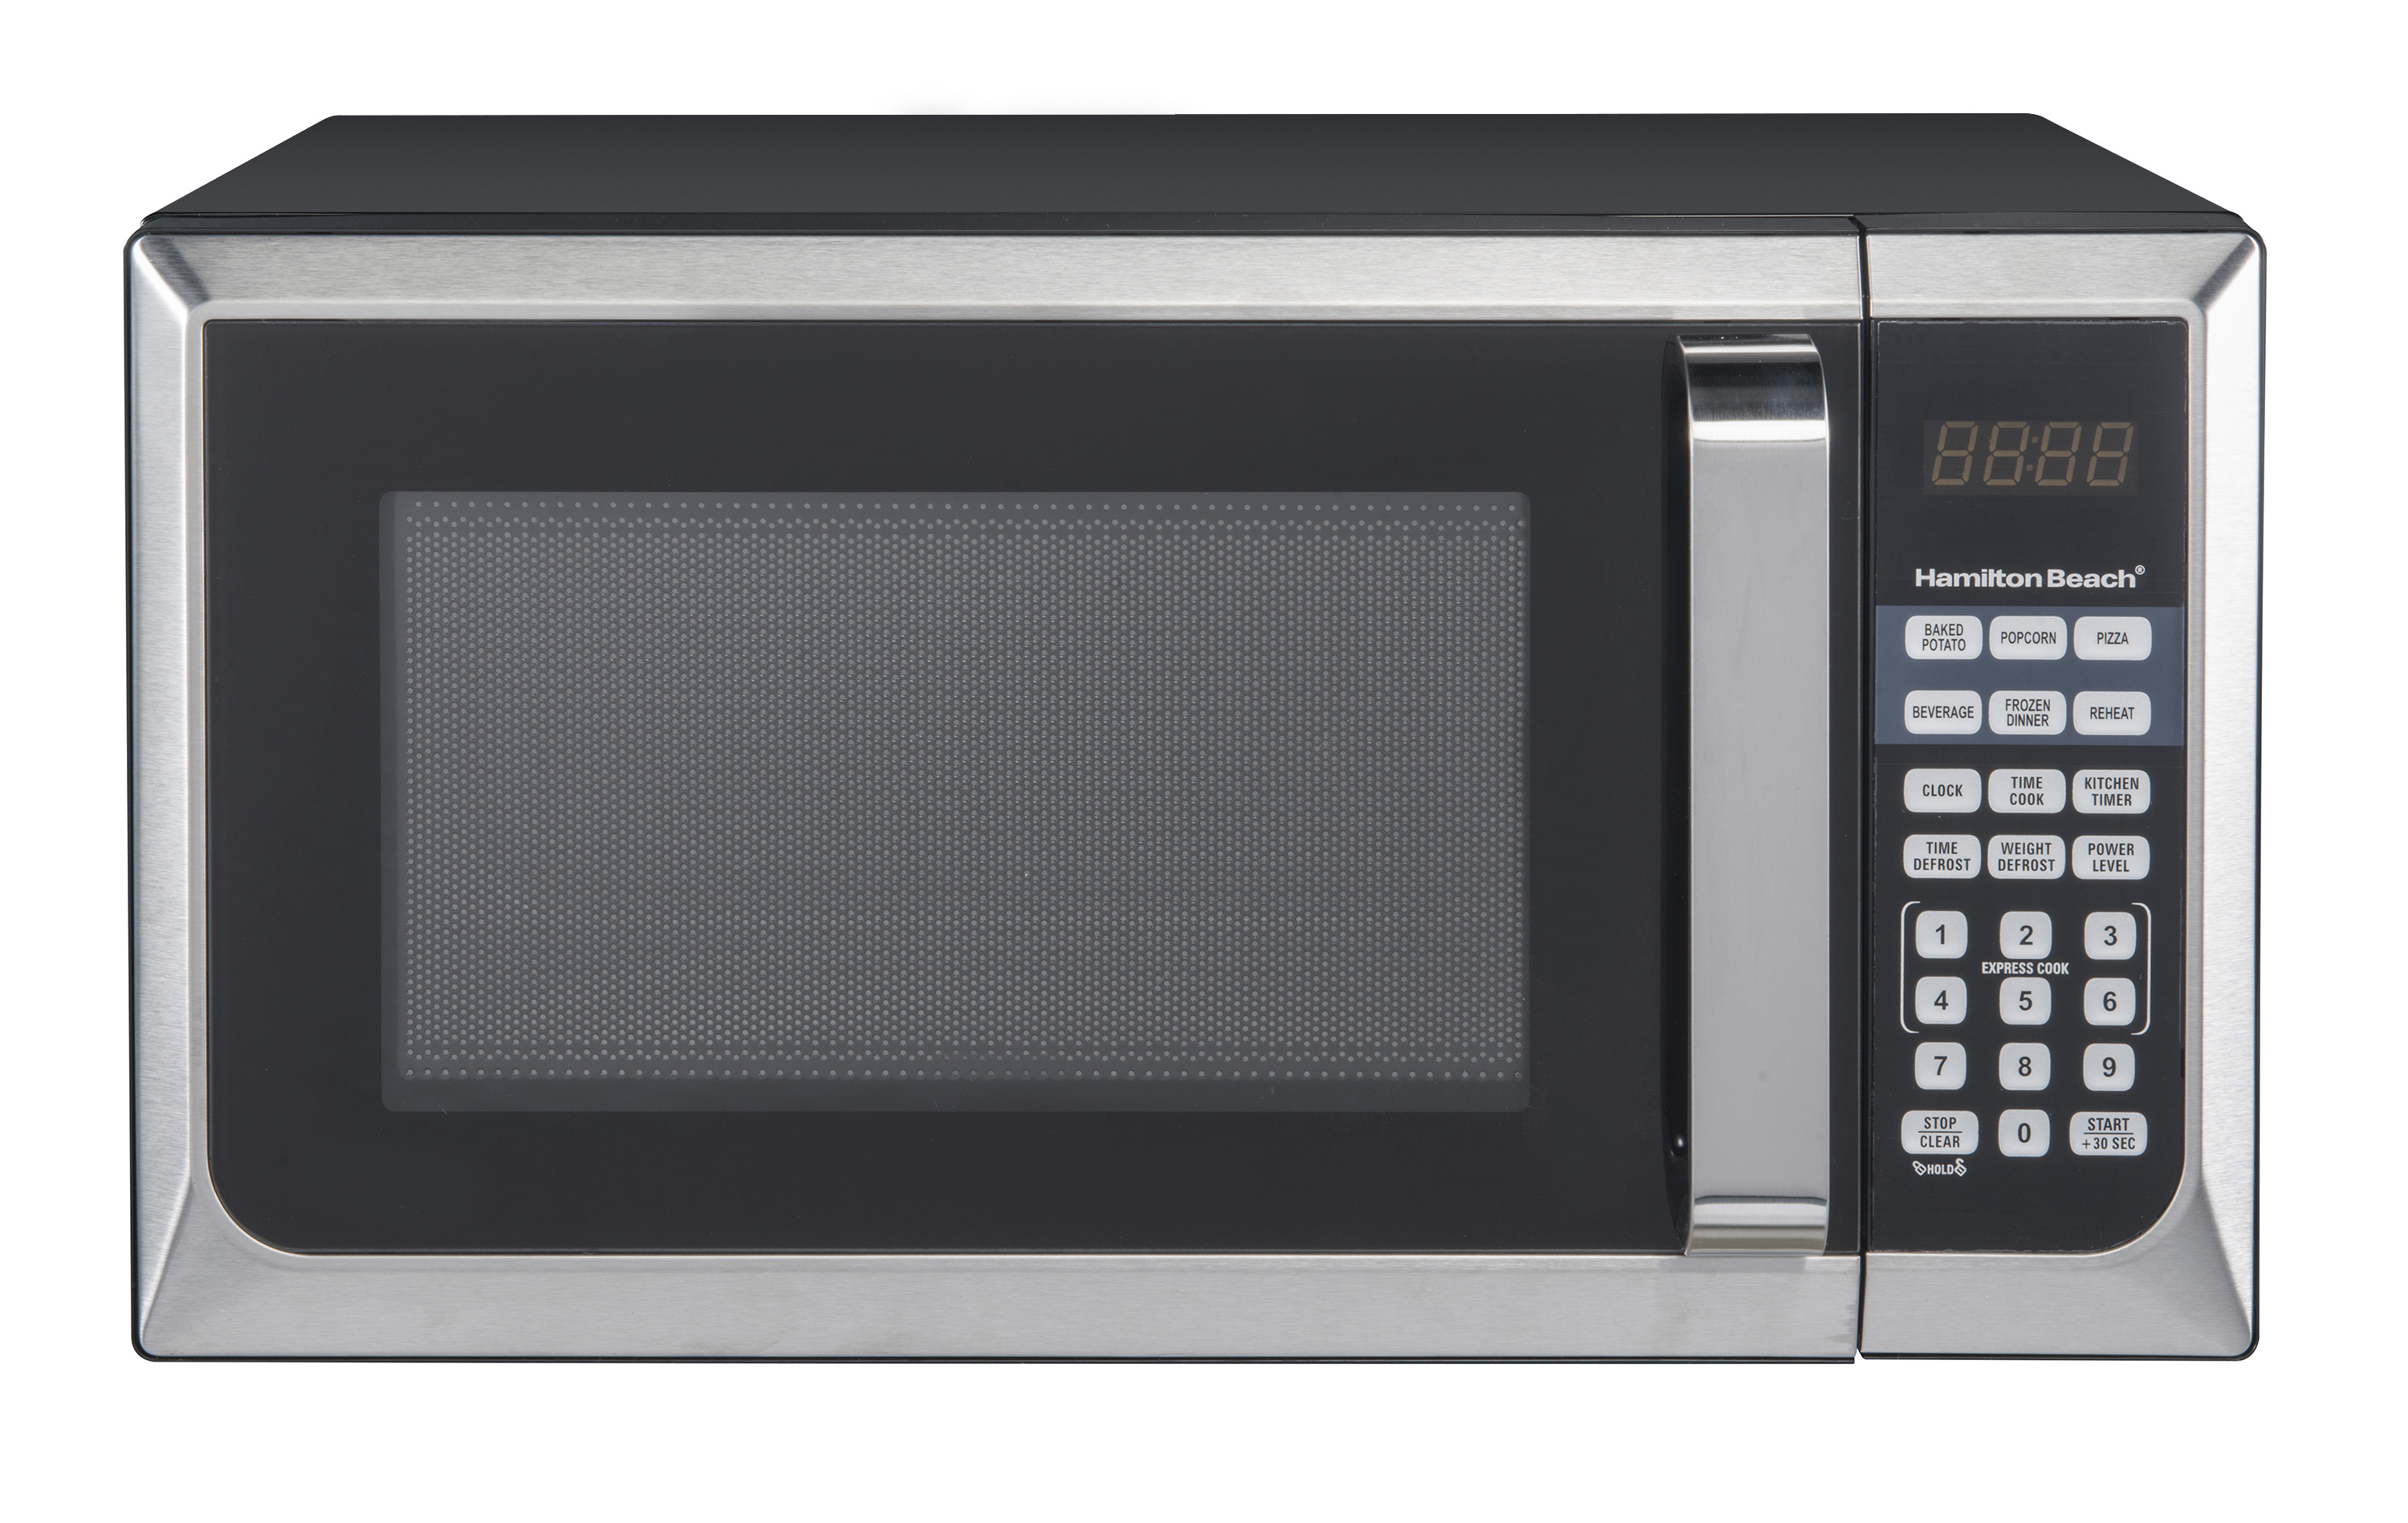 Hamilton Beach Microwave on sale for $55 (Photo via Walmart)